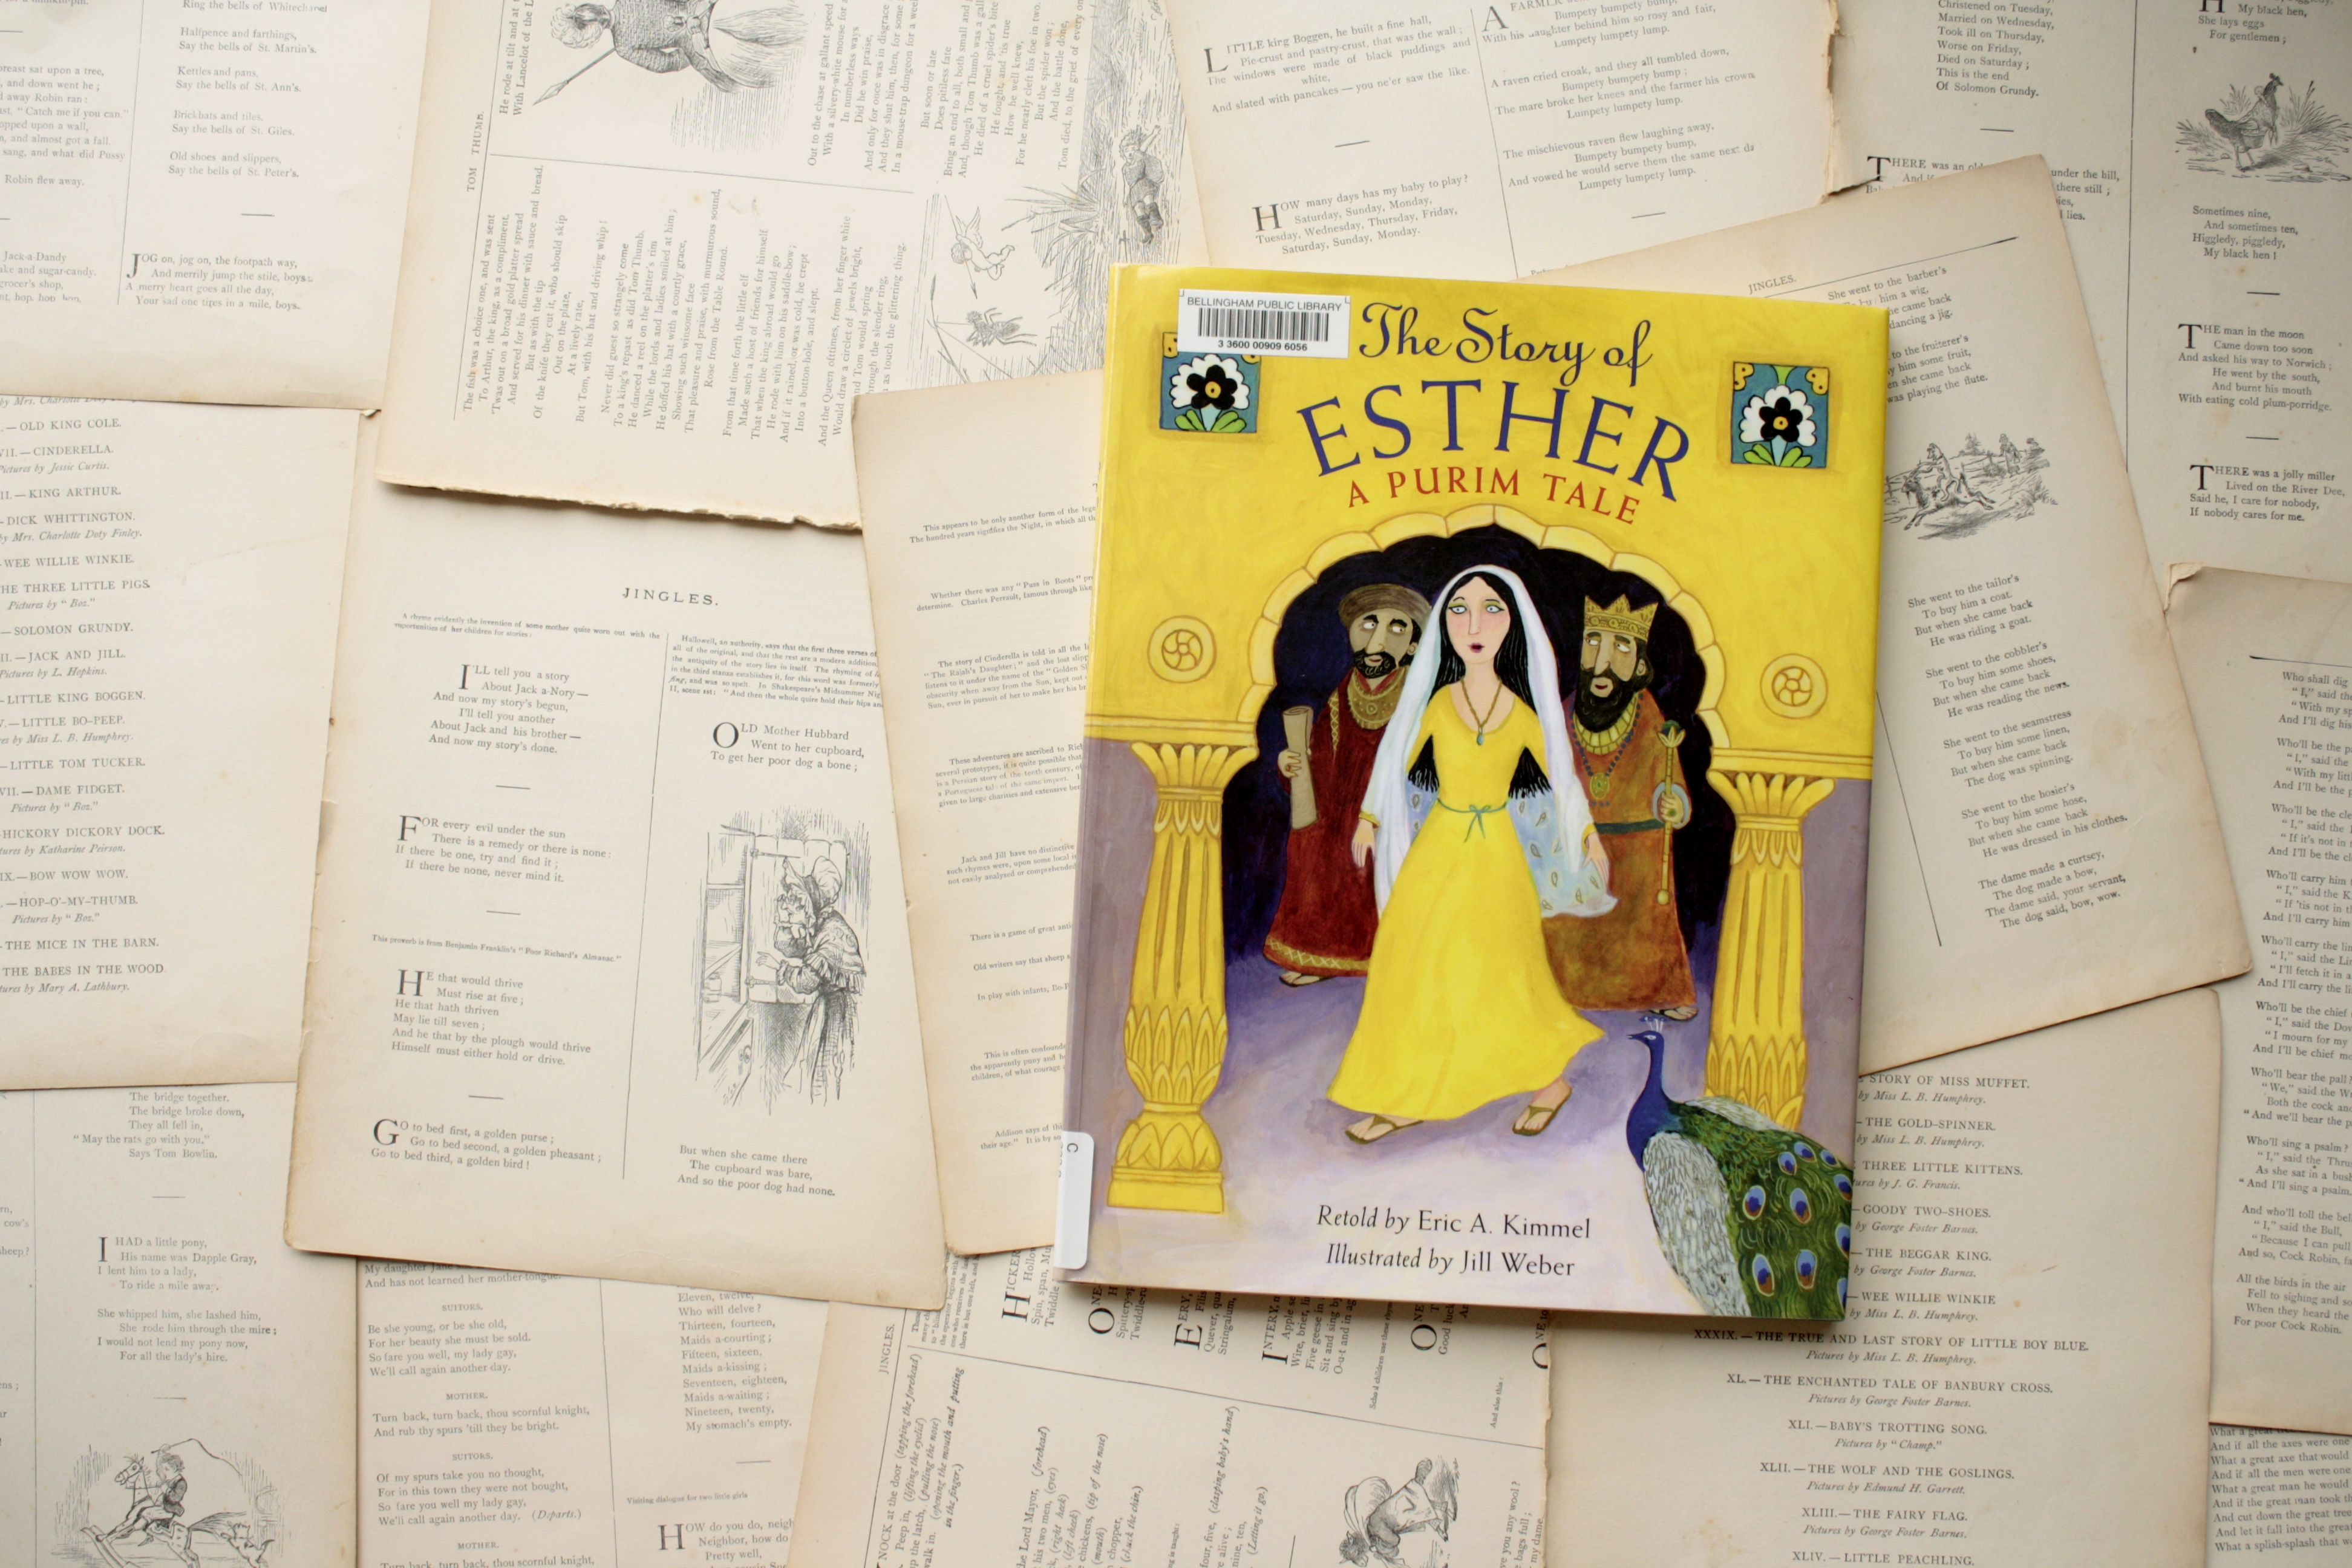 The Story of Esther | Eric A. Kimmel